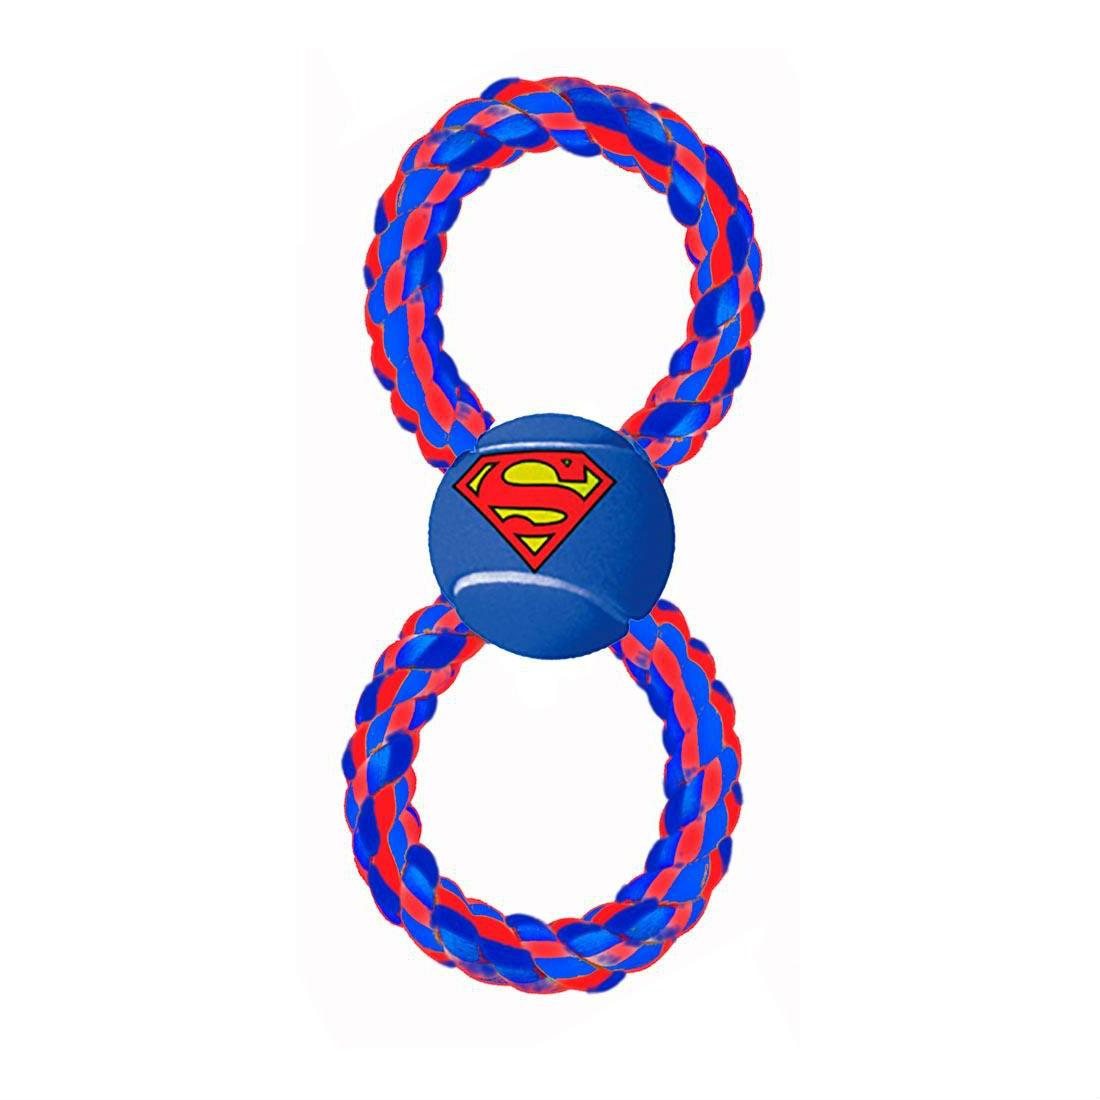 Superman Rope Tennis Ball Dog Toy by Buckle-Down - Red/Blue